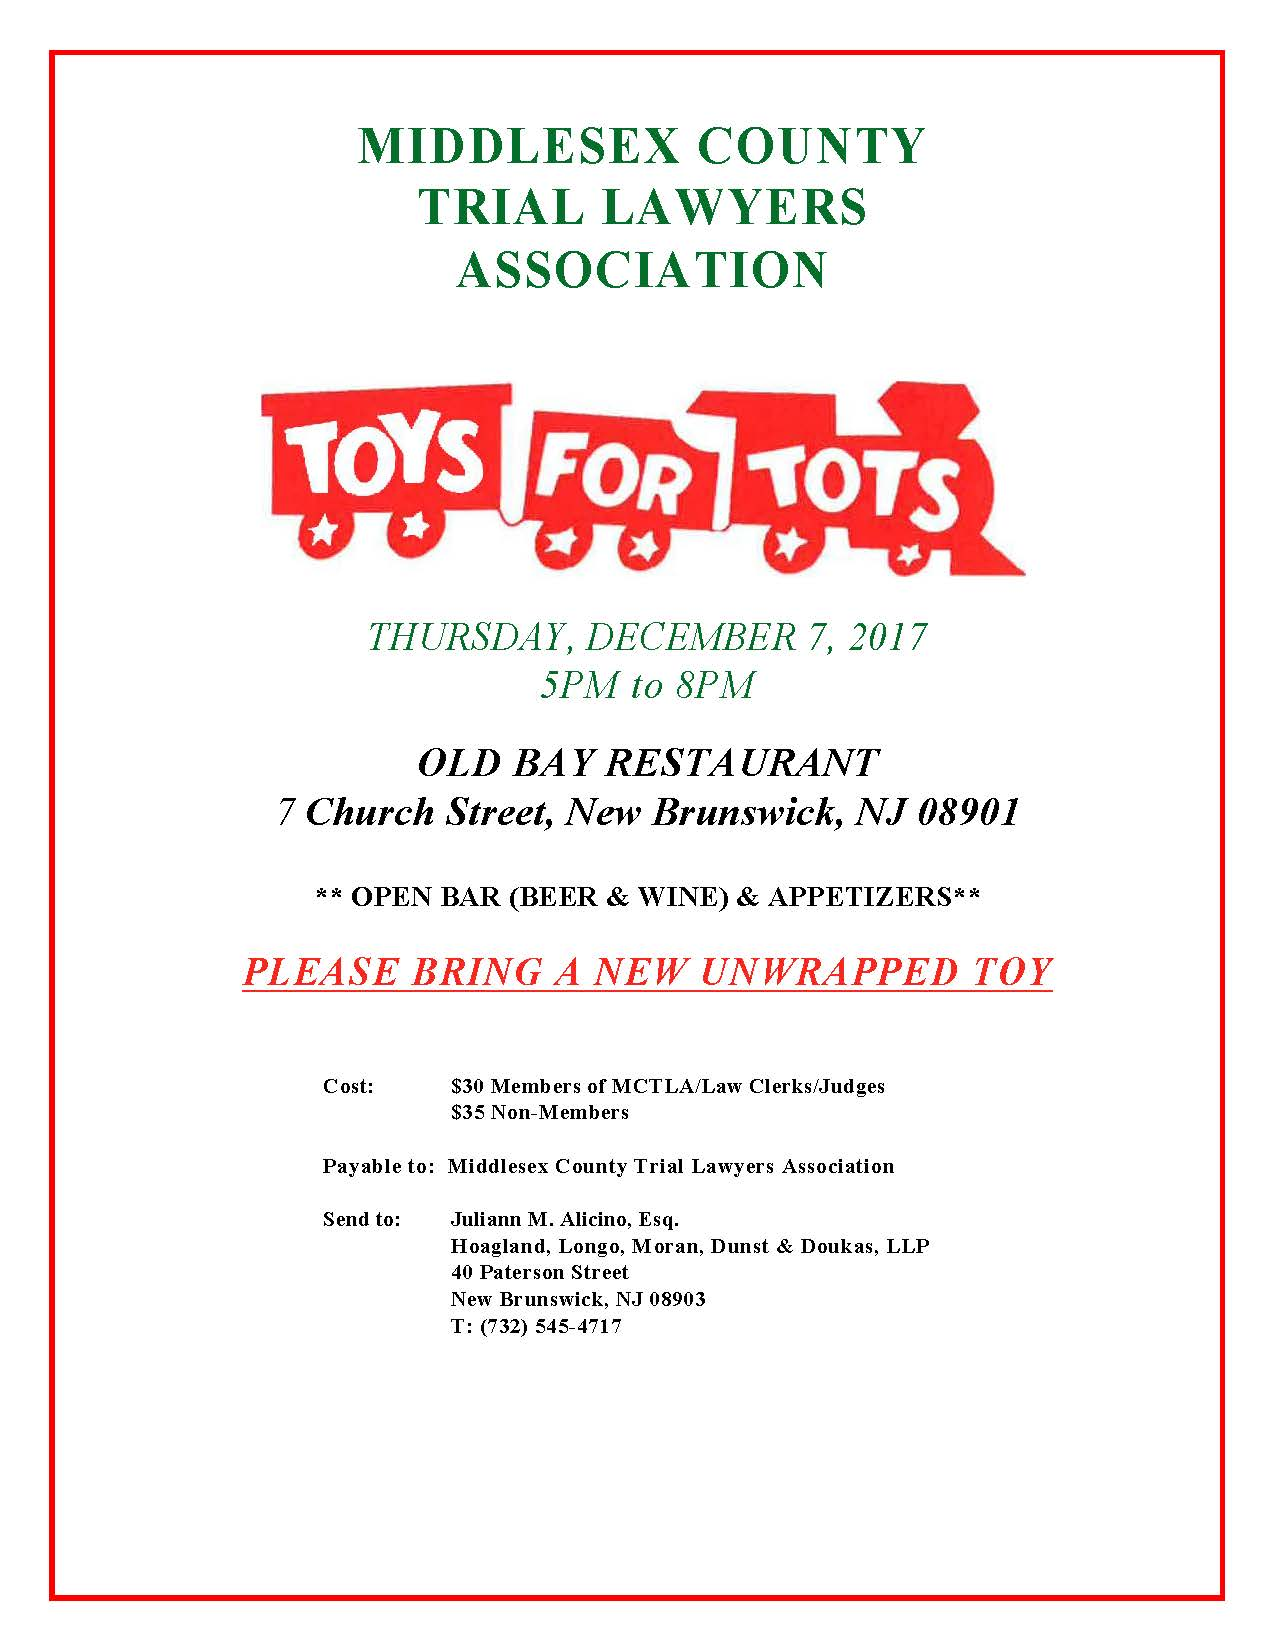 Toys For Tots Flyers Printable : Upcoming events toys for tots middlesex county